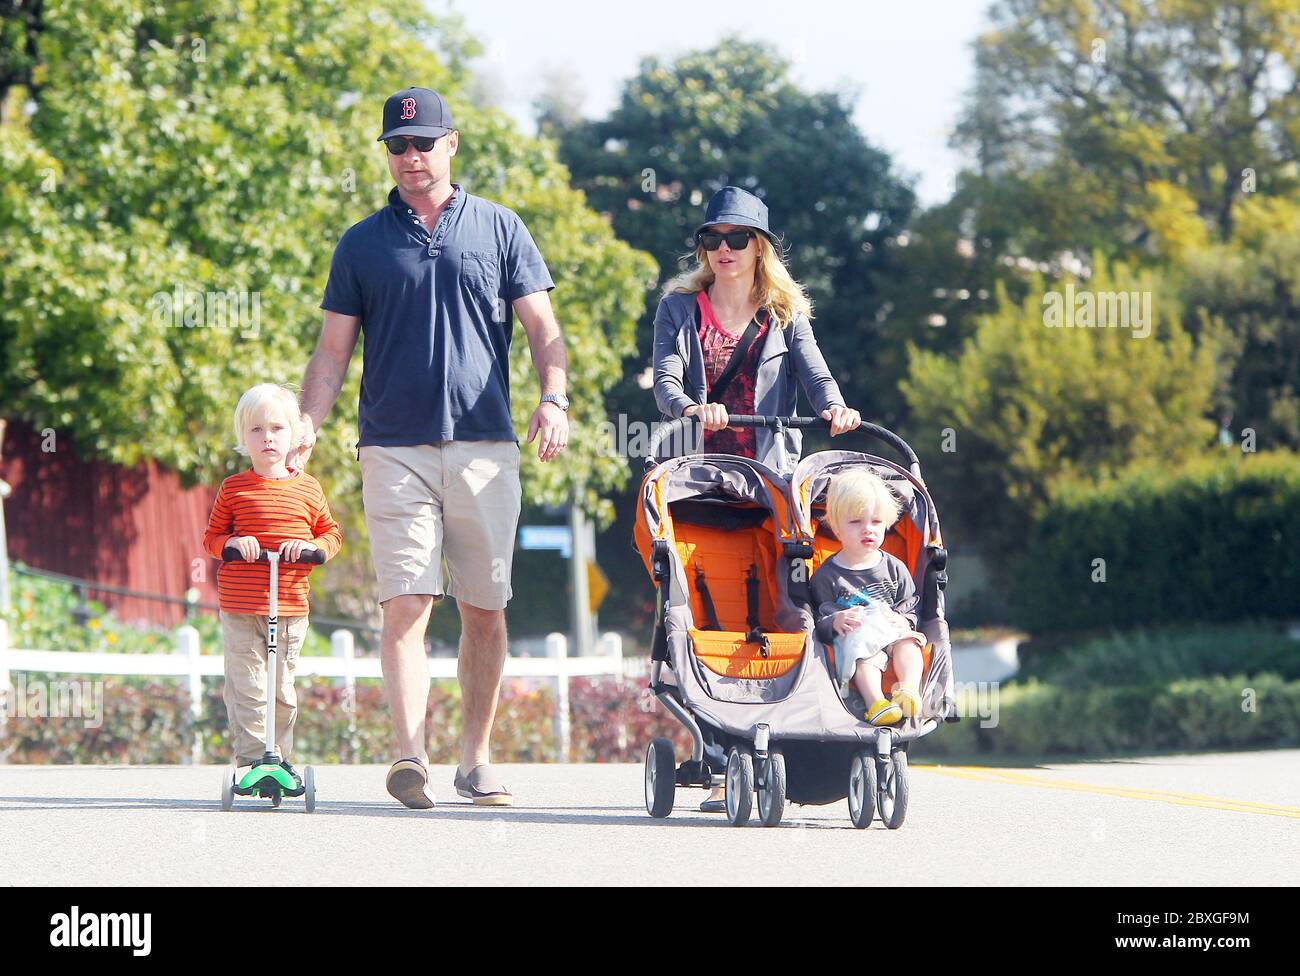 Naomi Watts and Liev Schrieber take boys Alexander and Samuel Schrieber to the Farmers Market, Brentwood, California. 2011 Stock Photo